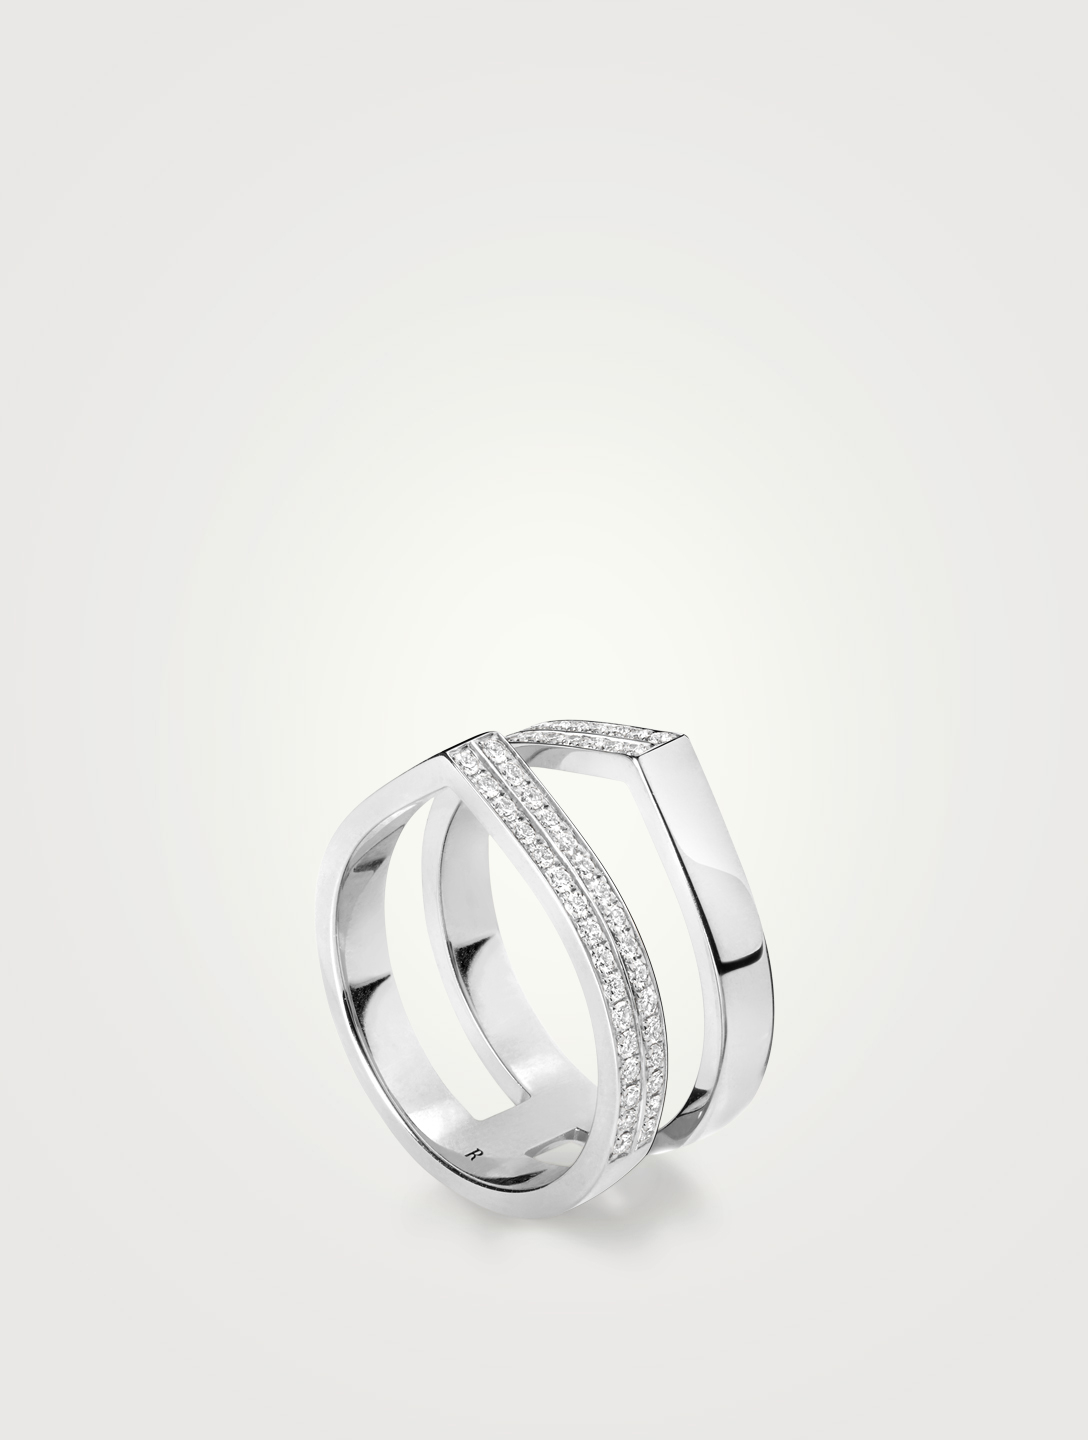 REPOSSI Antifer Off-Width 18K White Gold Ring With Diamonds Women's Metallic